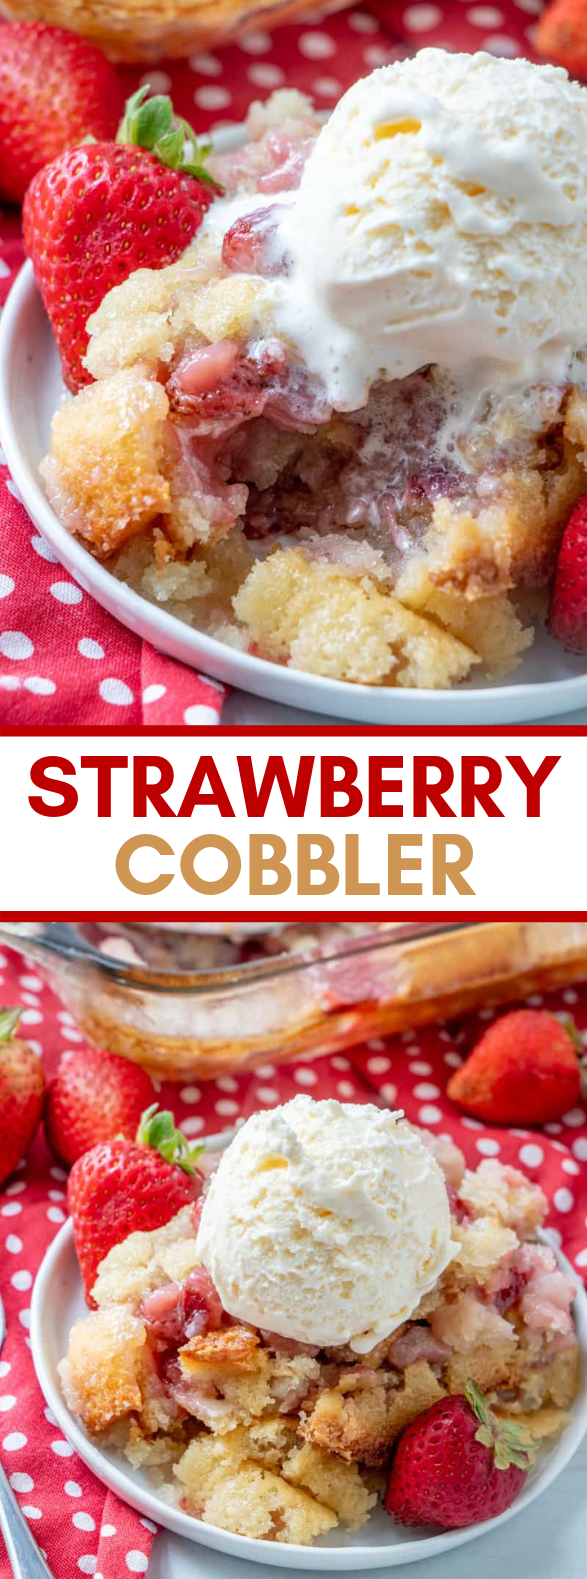 STRAWBERRY COBBLER #desserts #sweets